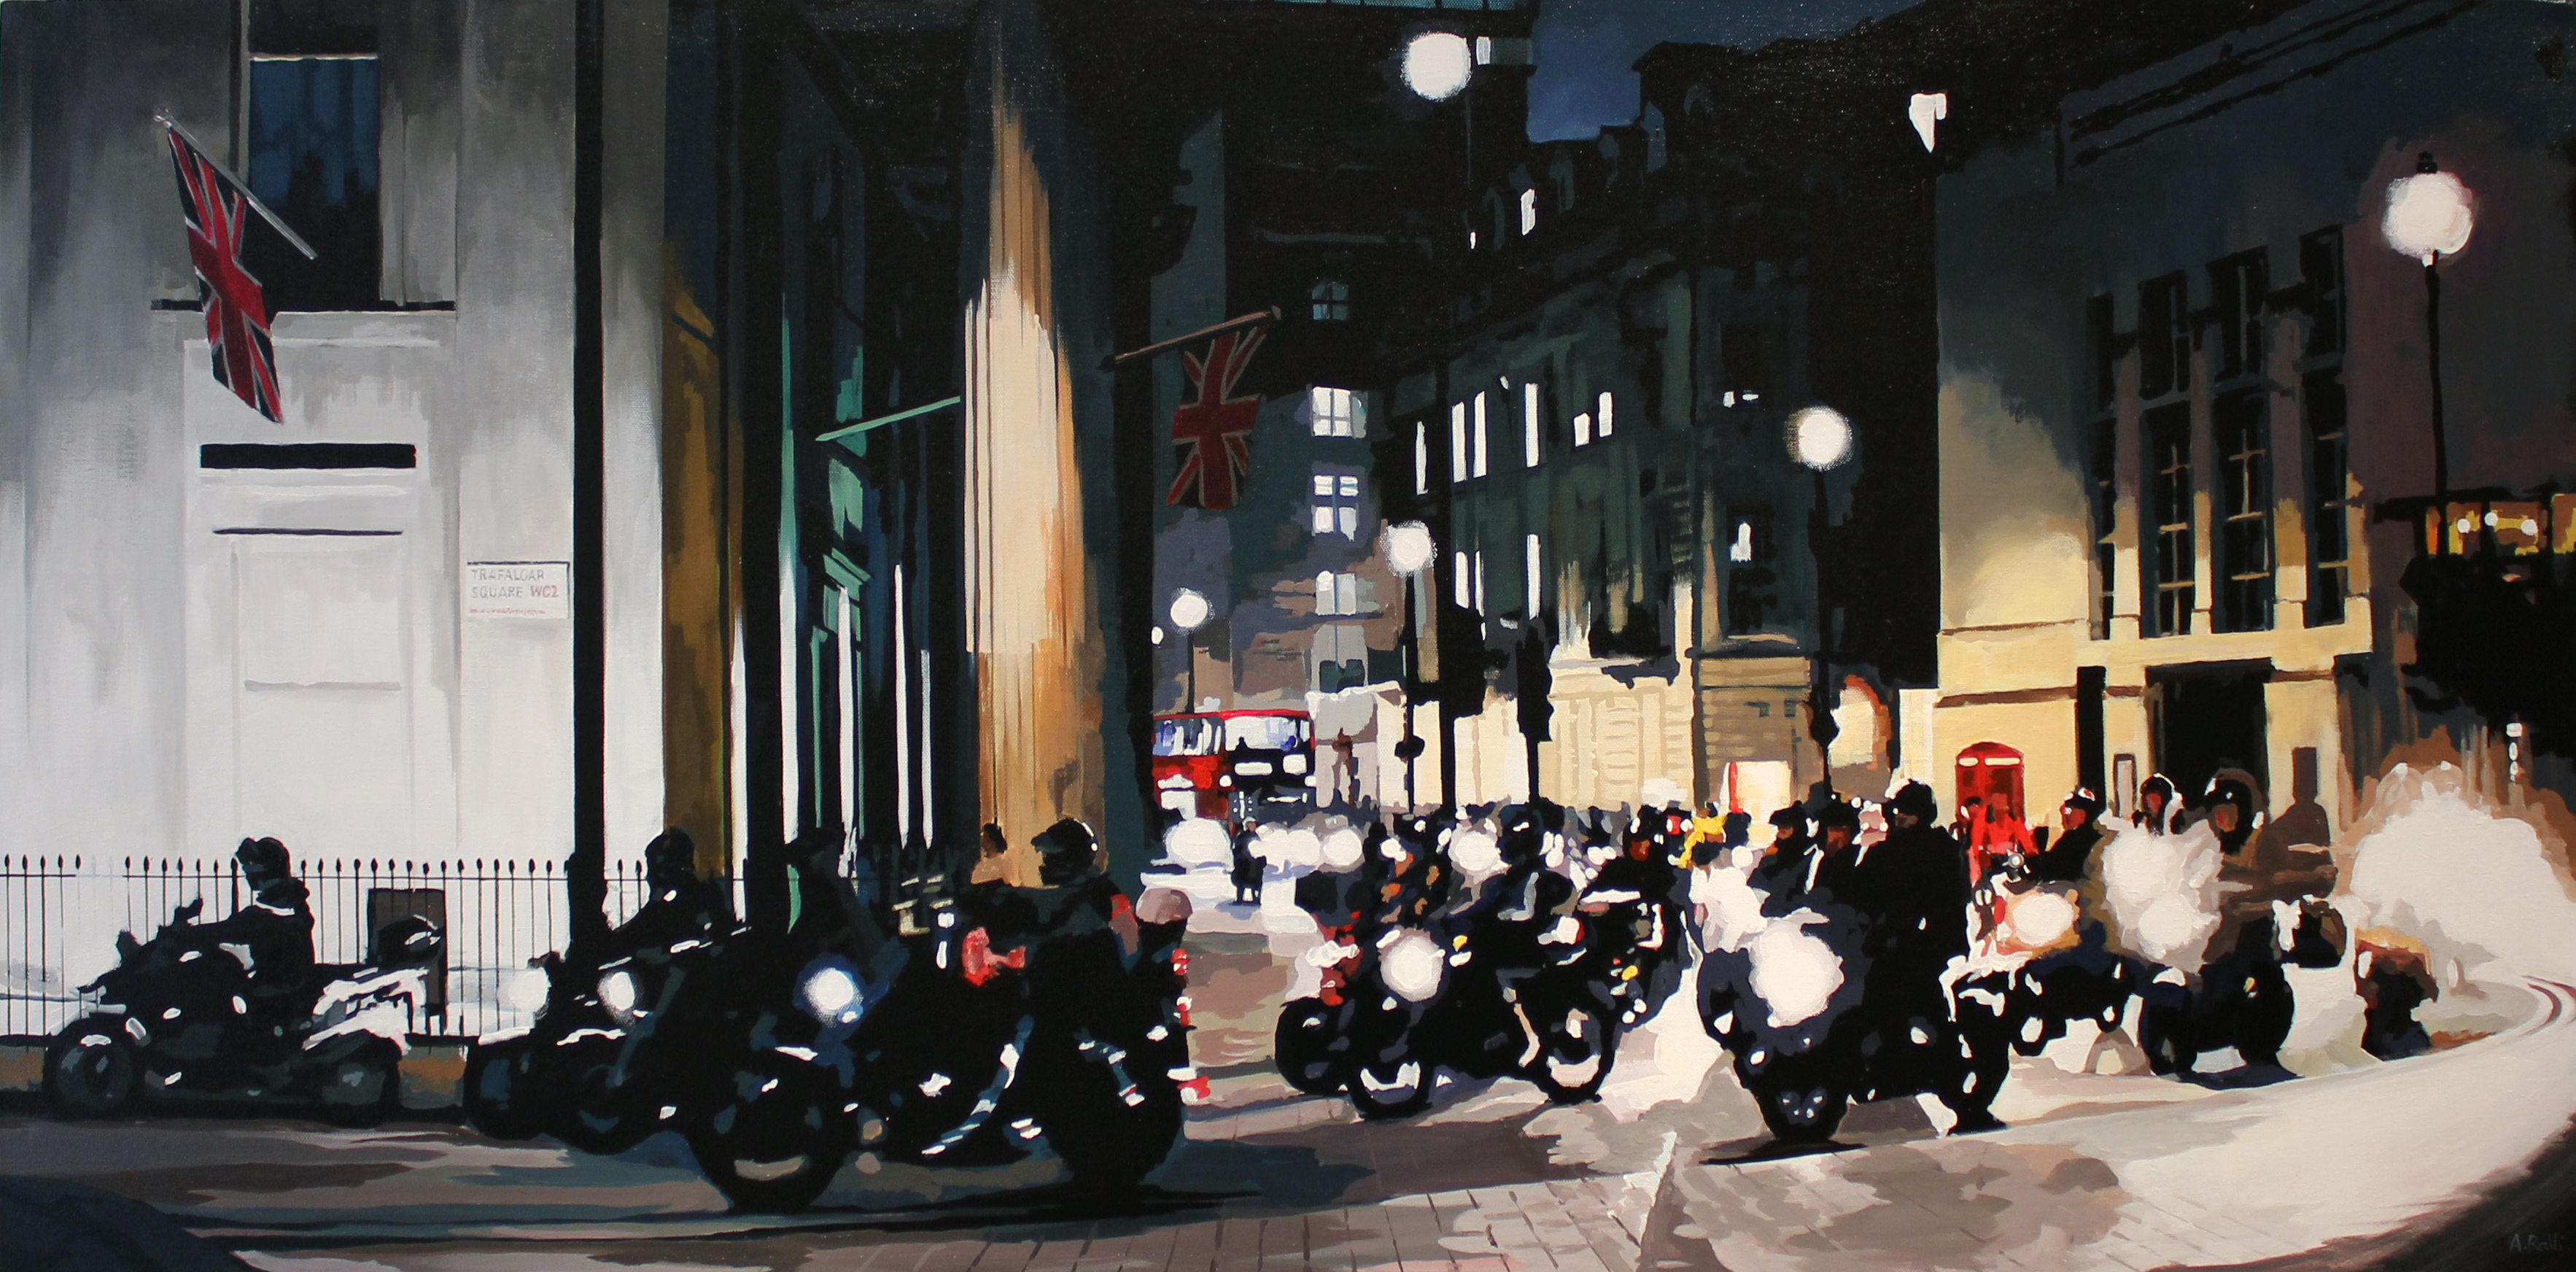 Annie Ralli, Original acrylic painting on canvas, Bikers in Trafalgar Square, click to enlarge